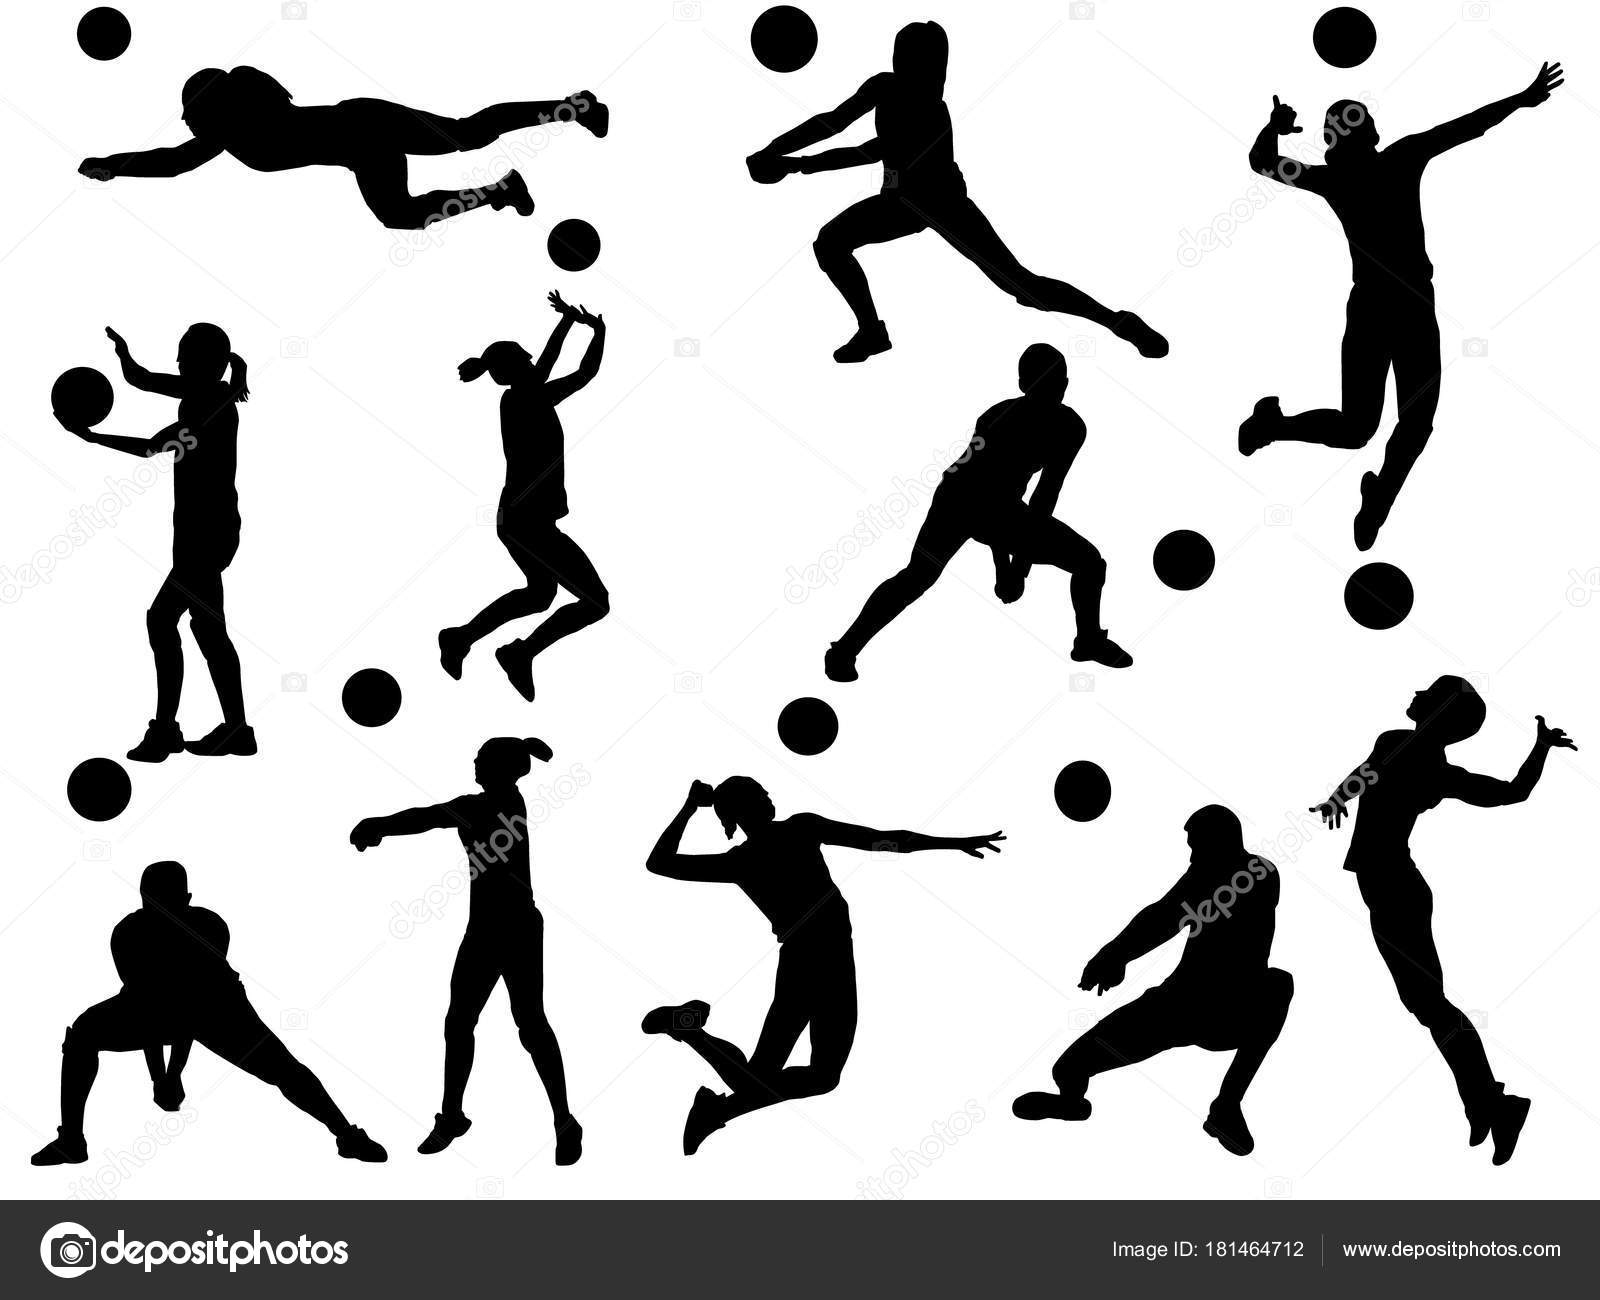 Illustration Abstract Volleyball Player Silhouette: Vector De Stock © Miloskontra